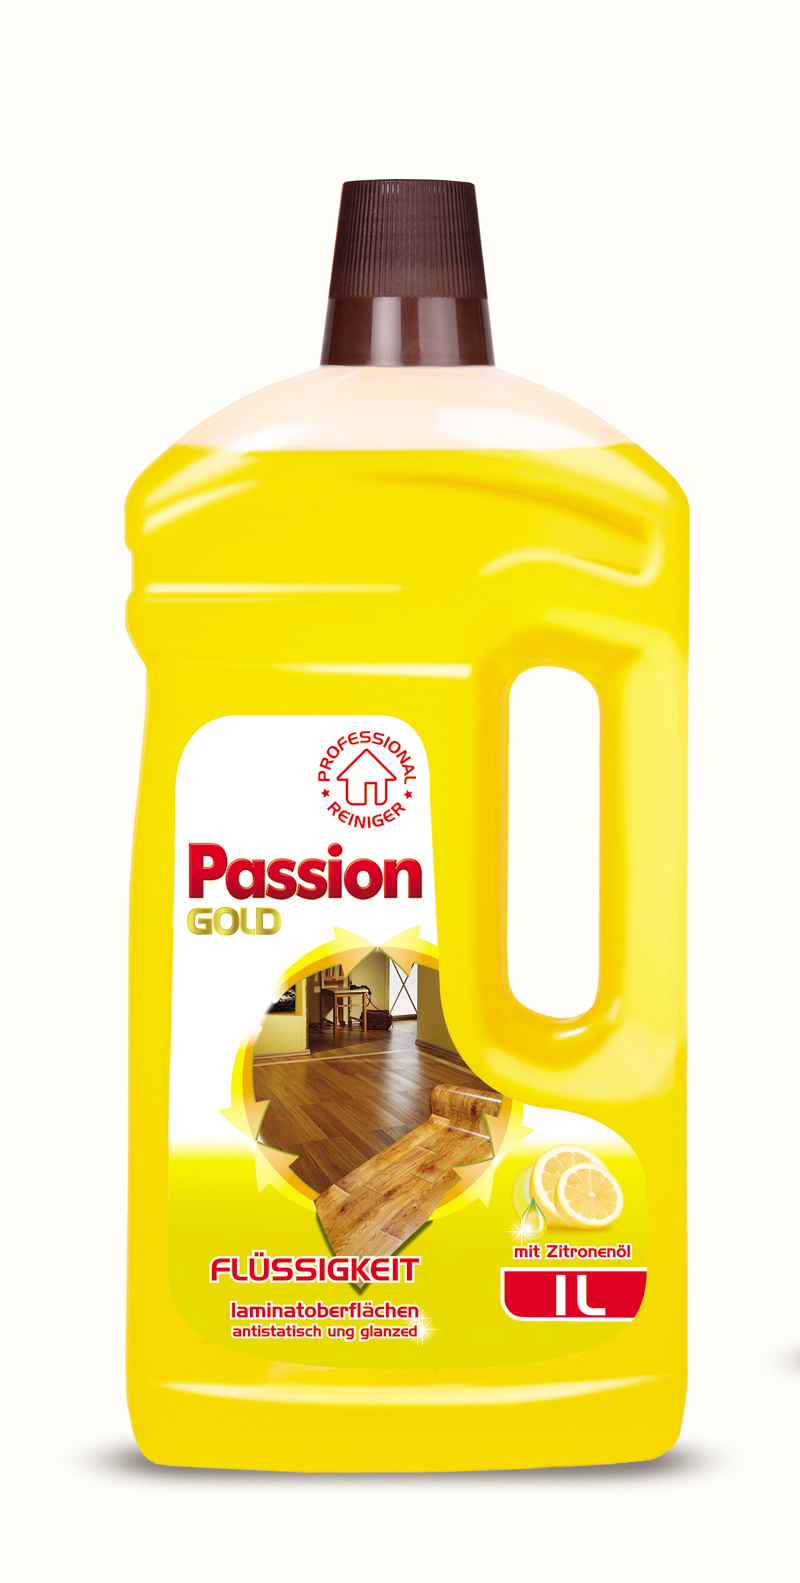 passiongold-flussigkeit-1l